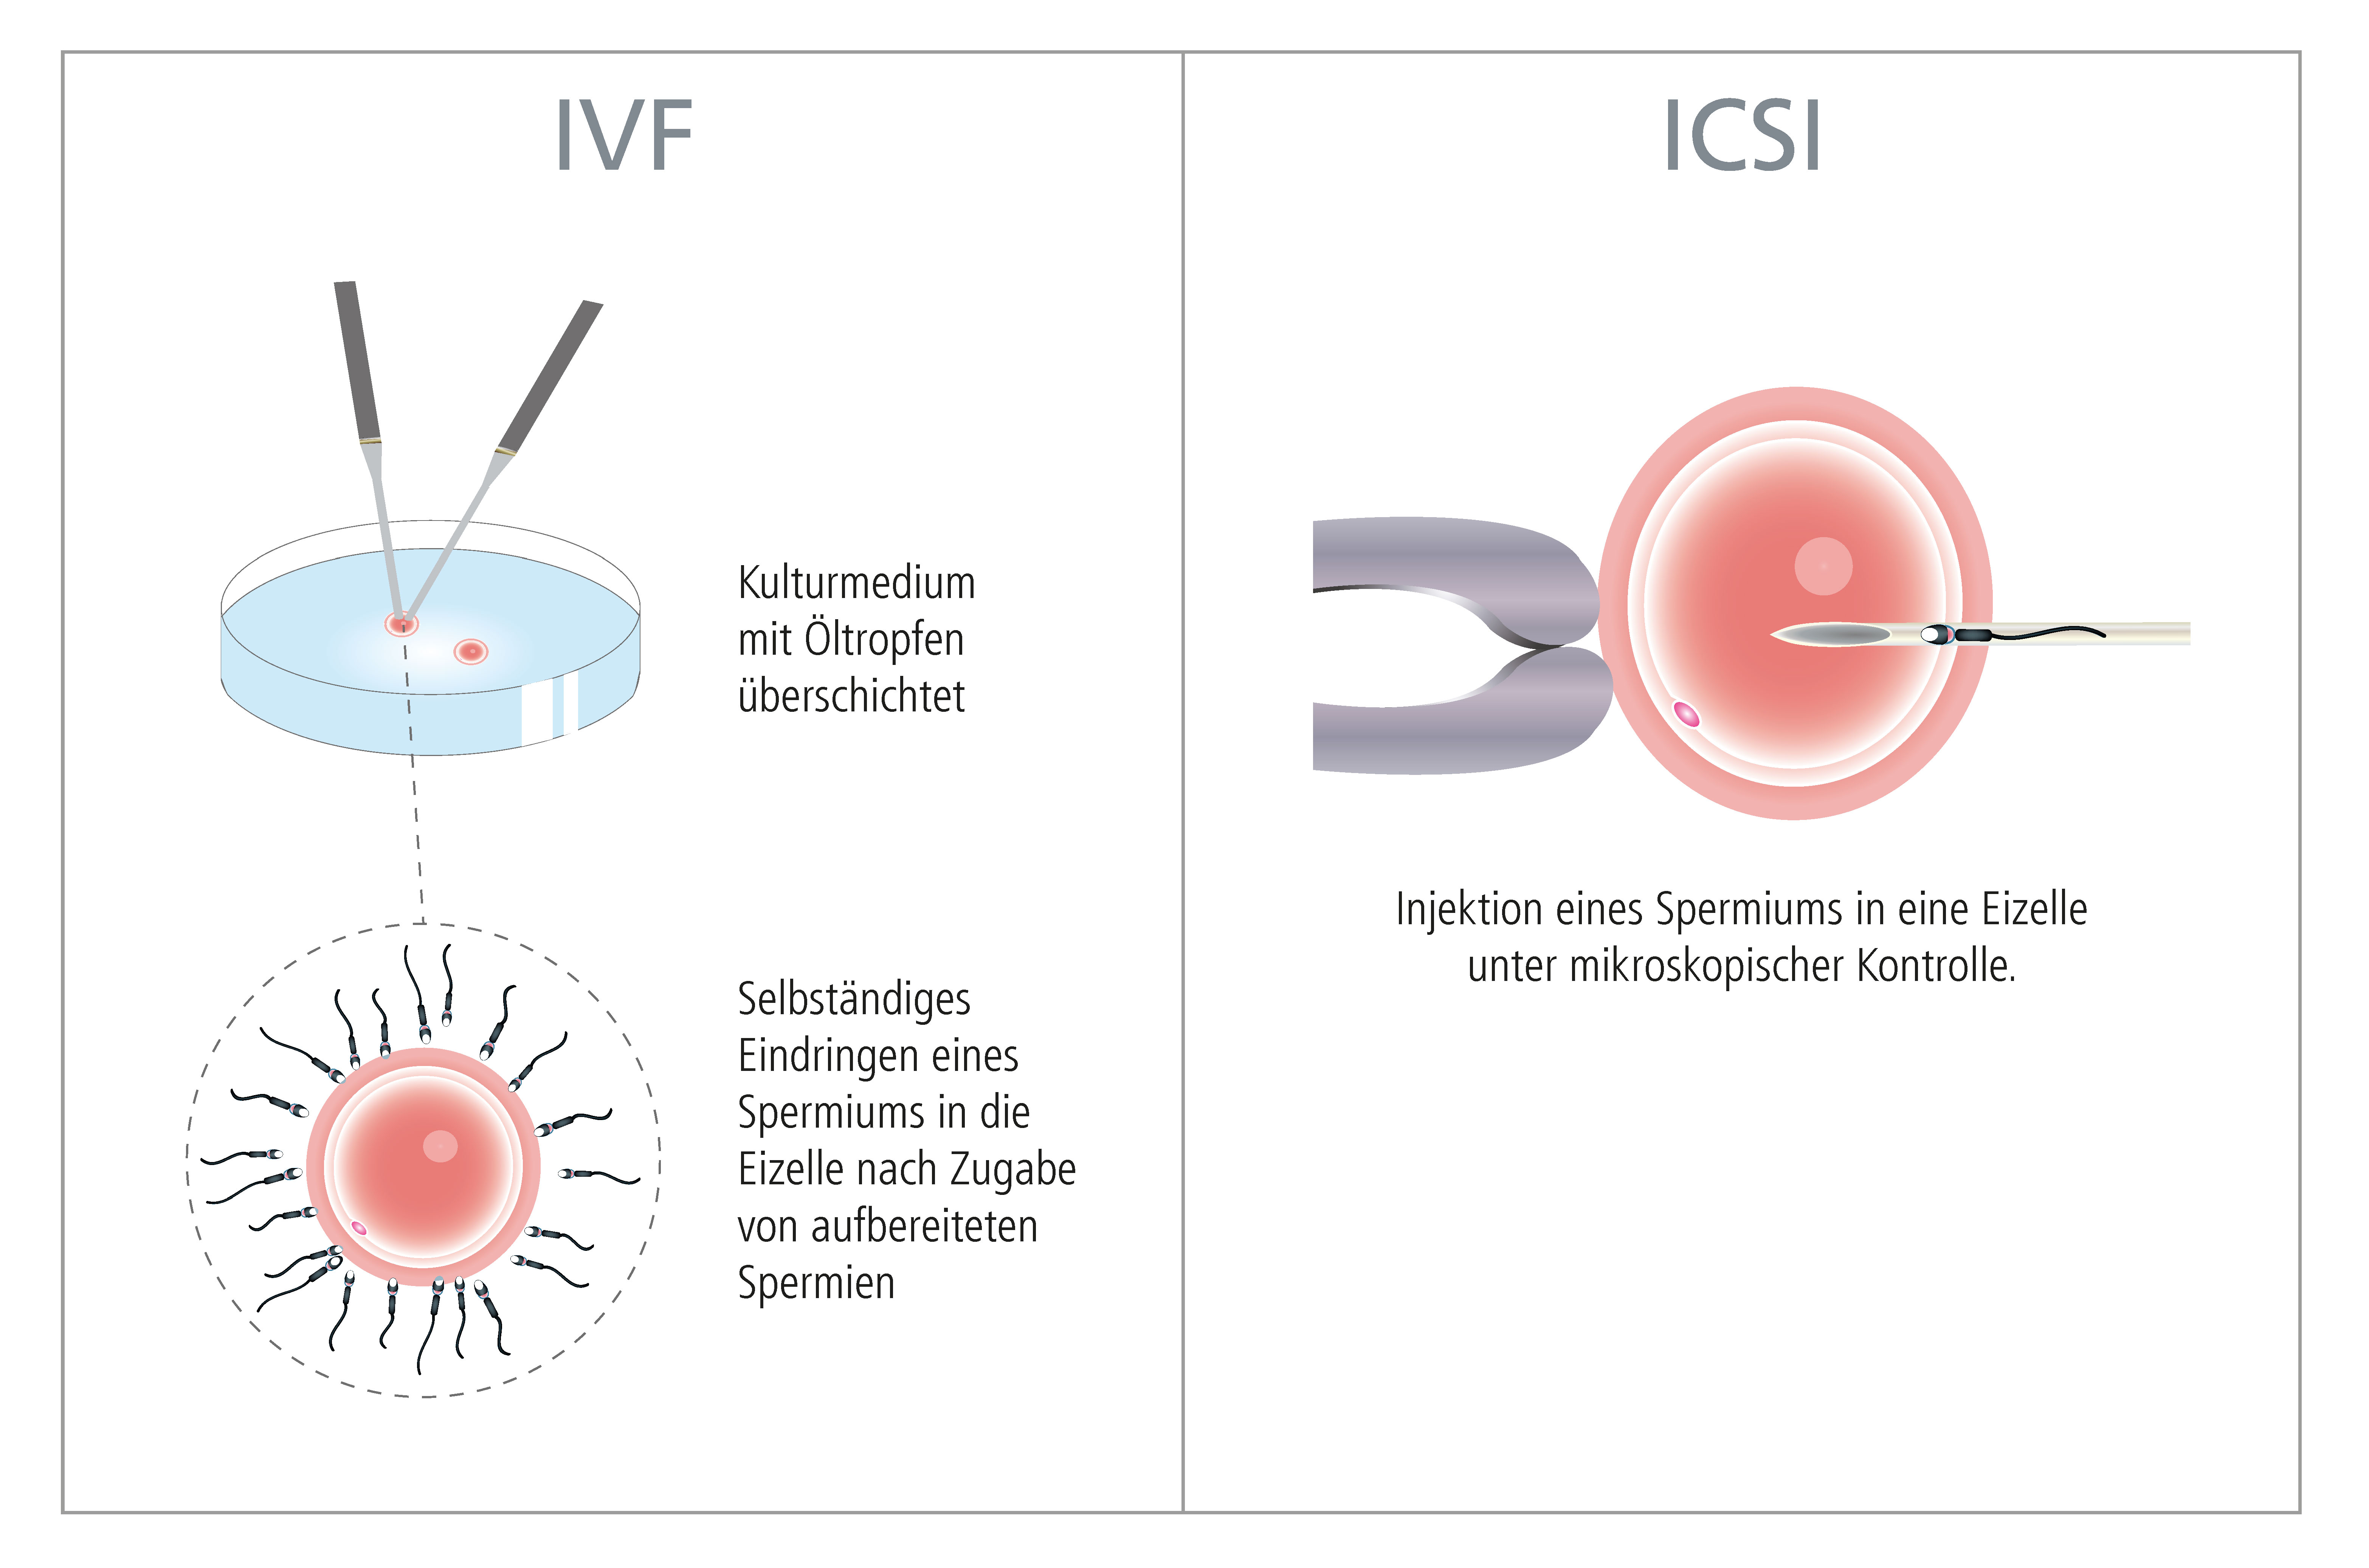 Schematic representation of the fertilization of an egg during IVF treatment: comparison between IVF and ICSI │ © 2019 IVF Zentren Prof. Zech • Member of NEXTCLINICS